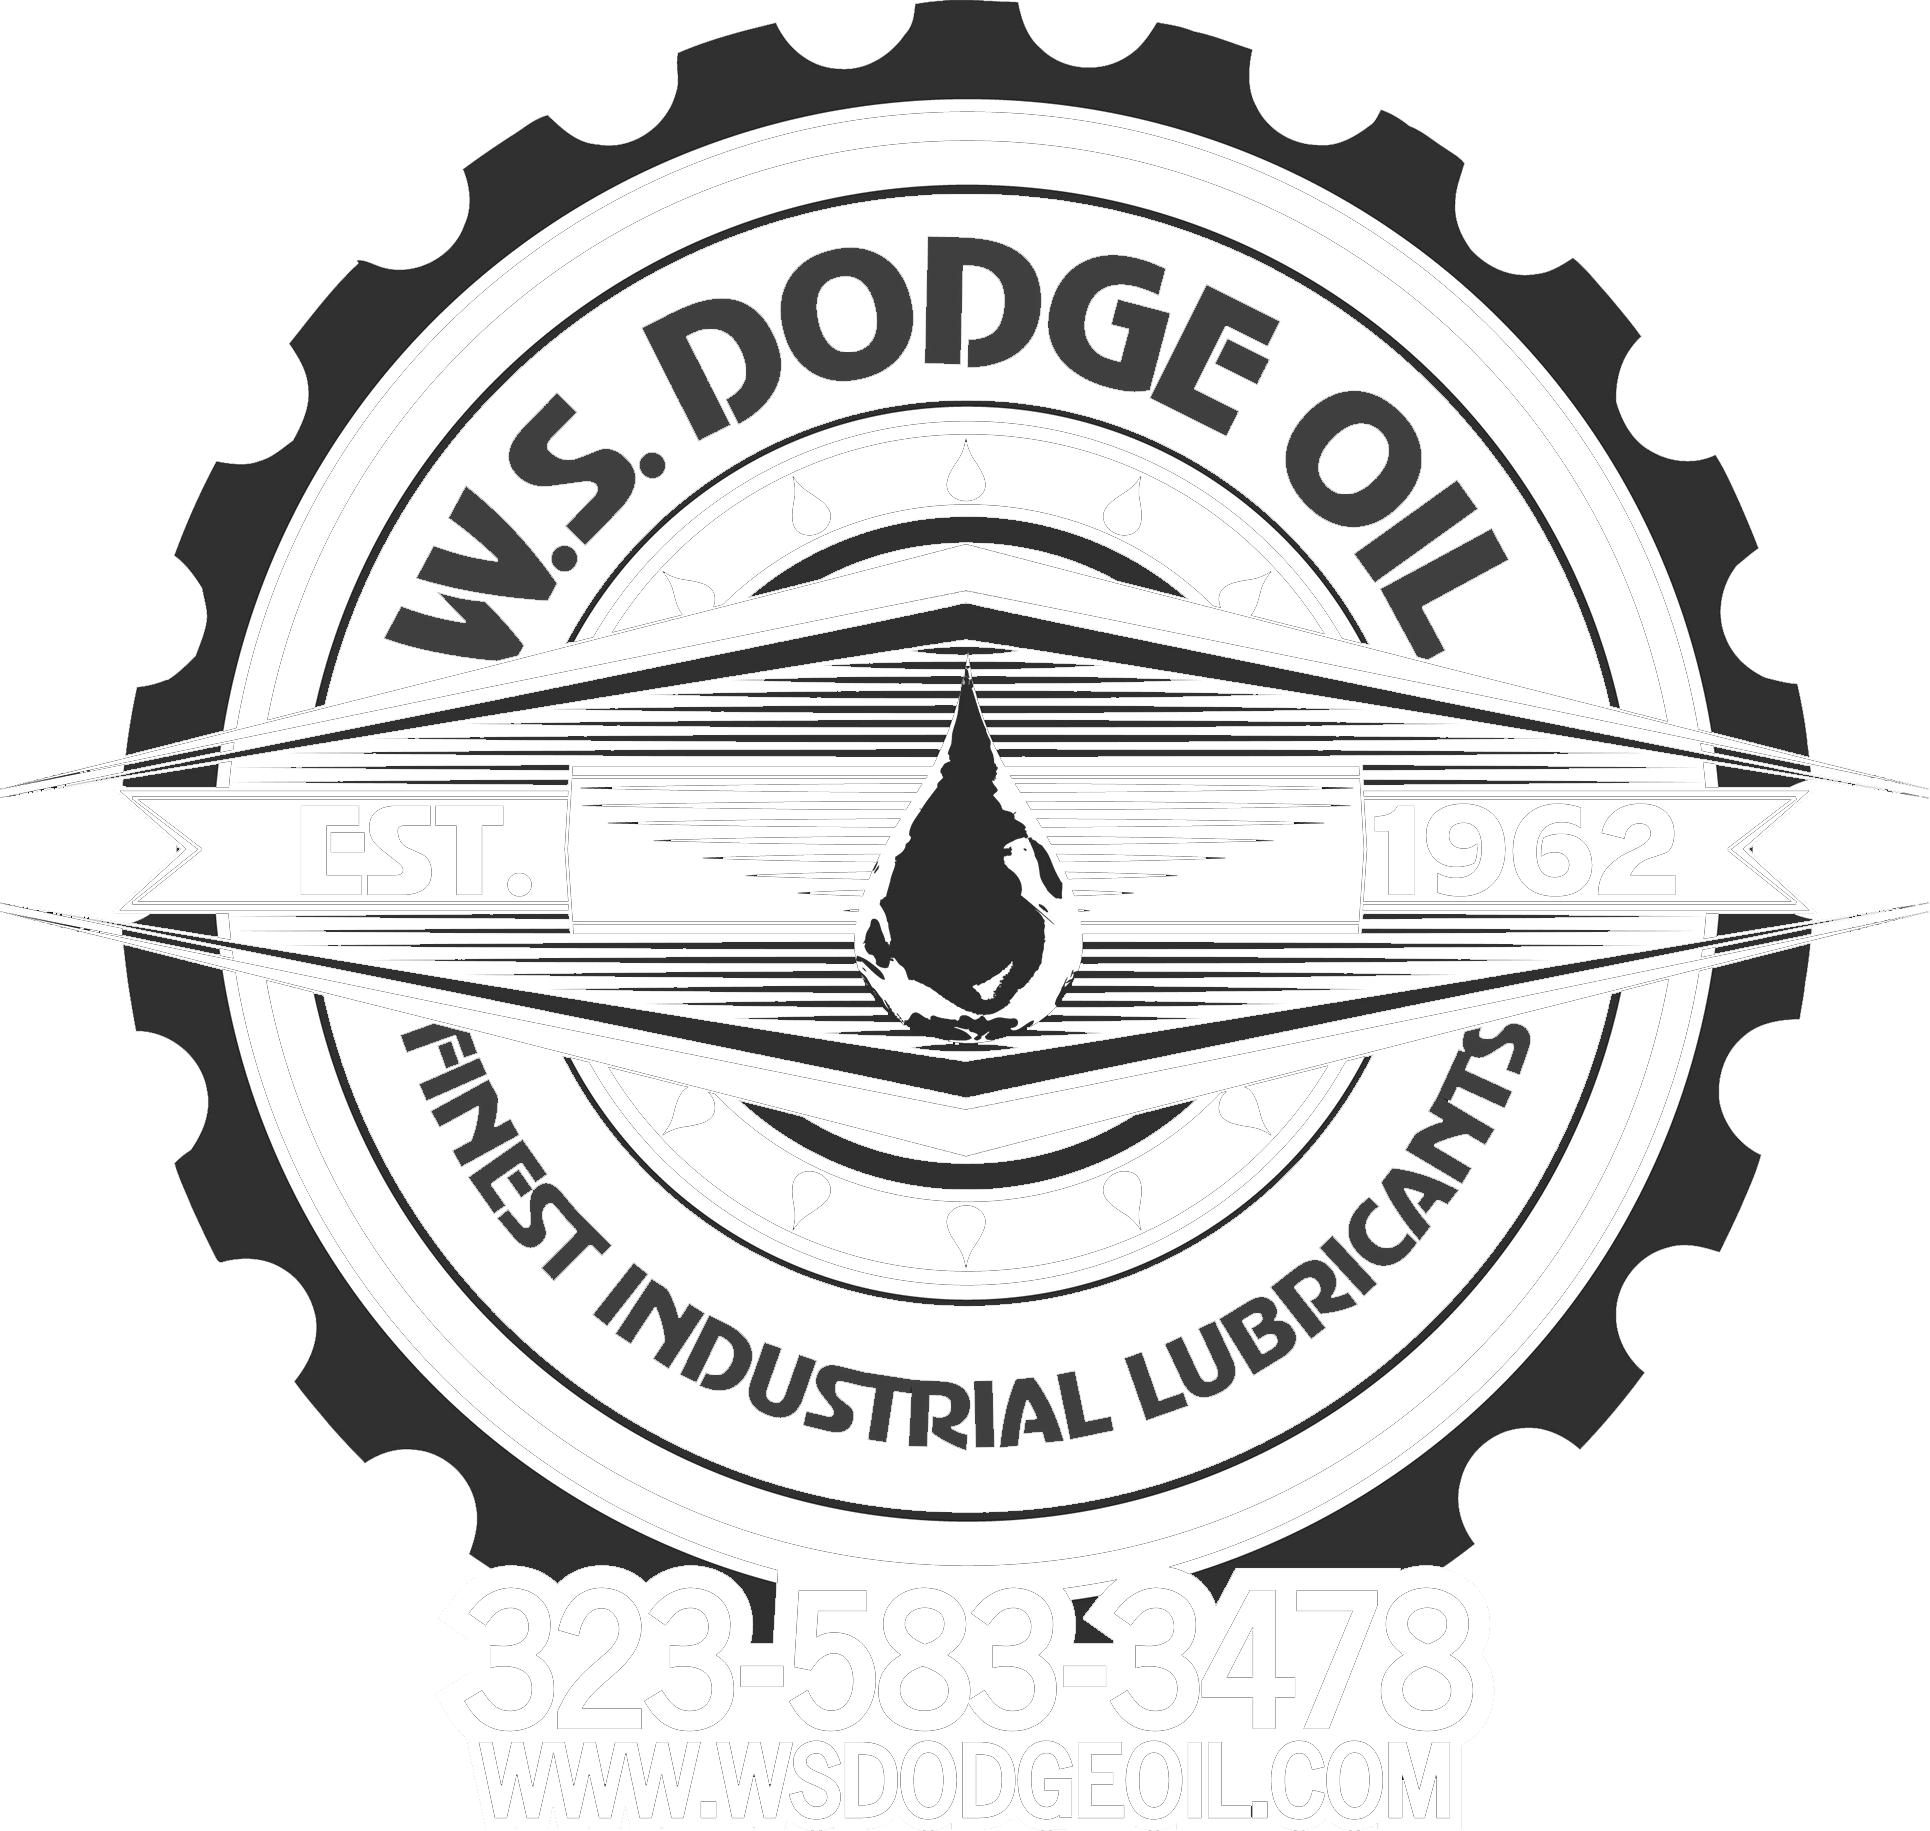 Dodge oil tshirt logo 3